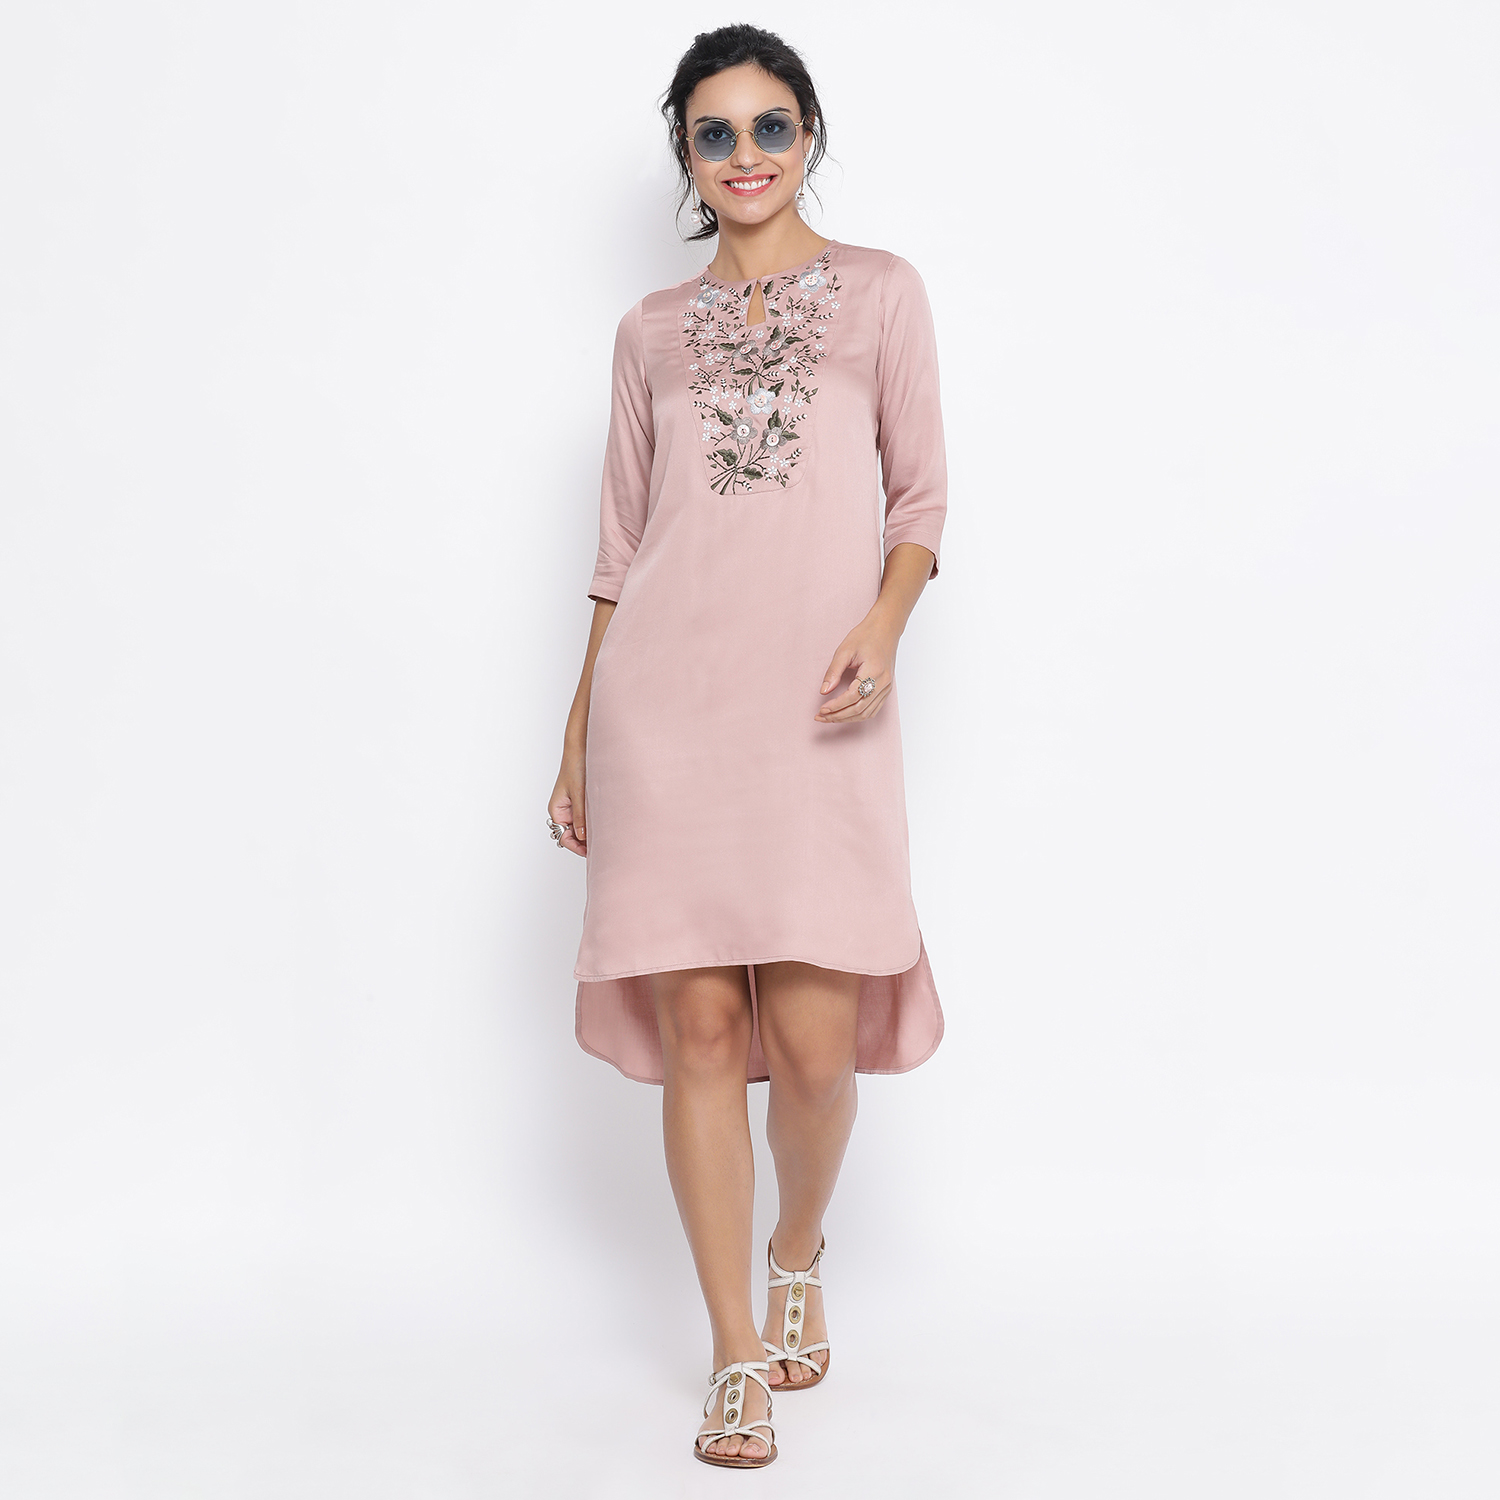 Buy Pink Long Tunic With Button Embroidery At Yoke For Women